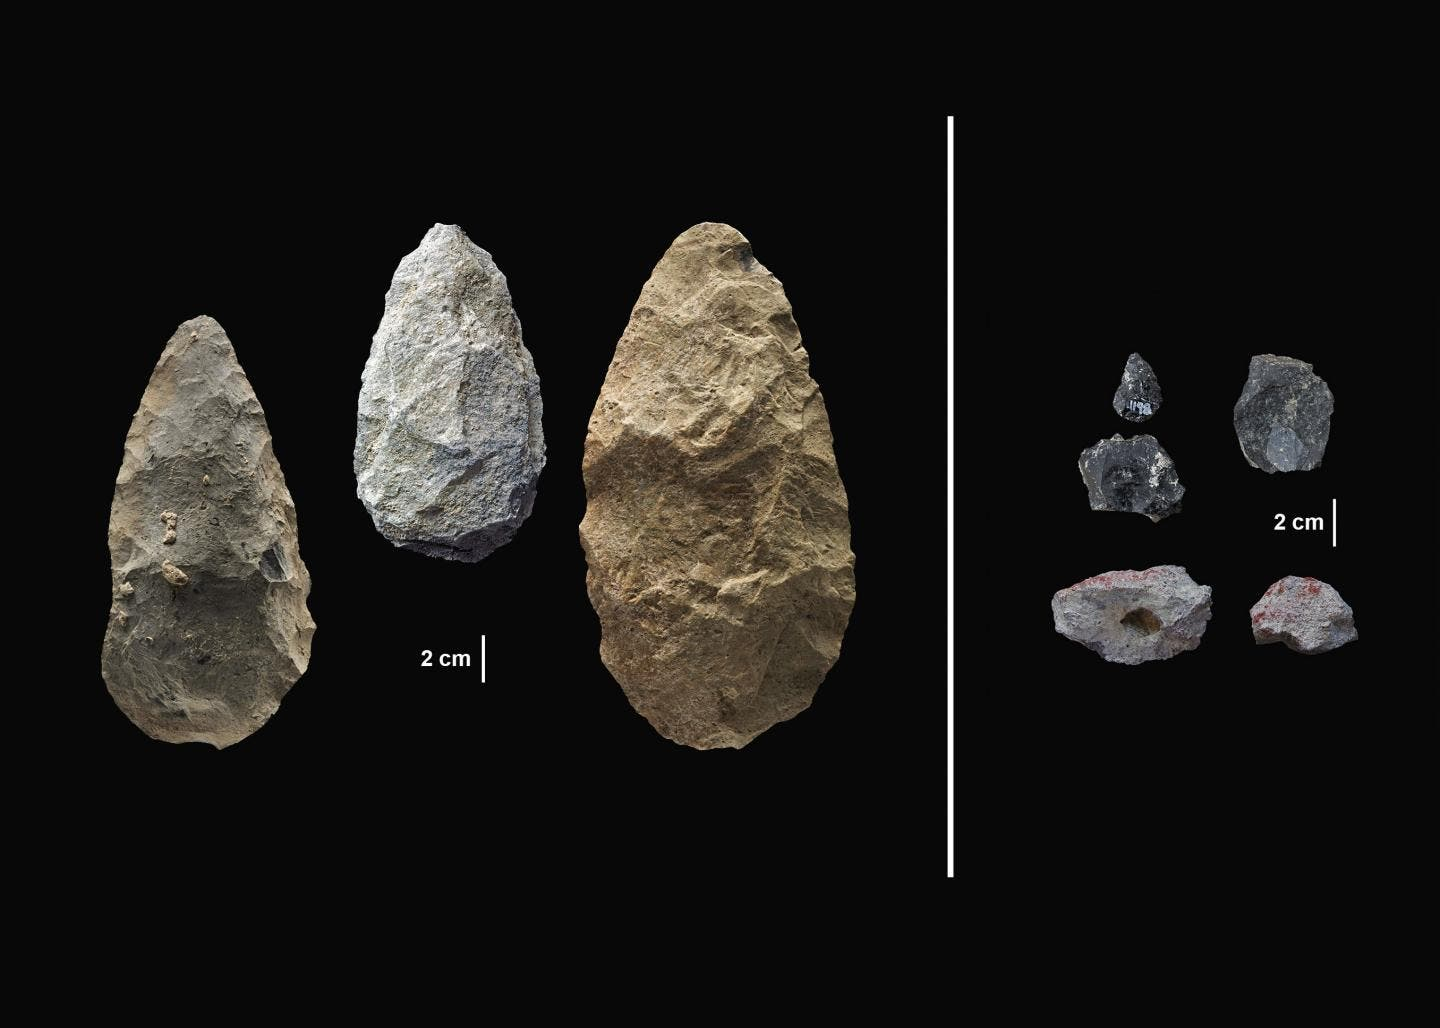 Ancient Tools Discovered in New Excavation Shed Light on Human Behavior